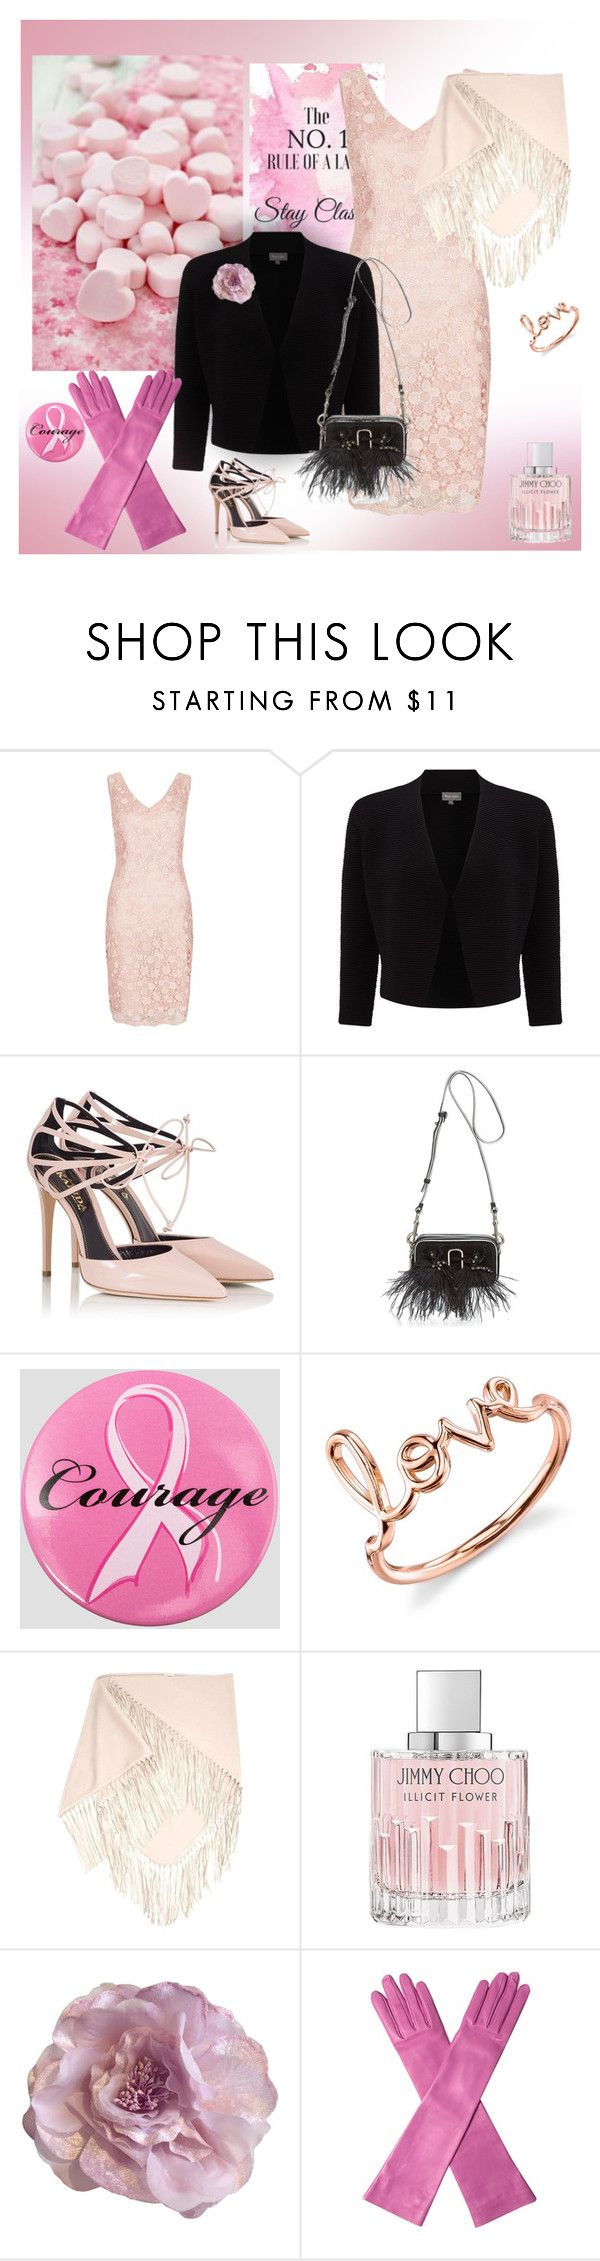 """Pink for COURAGE"" by gagenna ❤ liked on Polyvore featuring t+j Designs, Fenn Wright Manson, Phase Eight, Fratelli Karida, Marc Jacobs, Ashley Stewart, Sydney Evan, Jimmy Choo, Cynthia Rowley and Gucci"